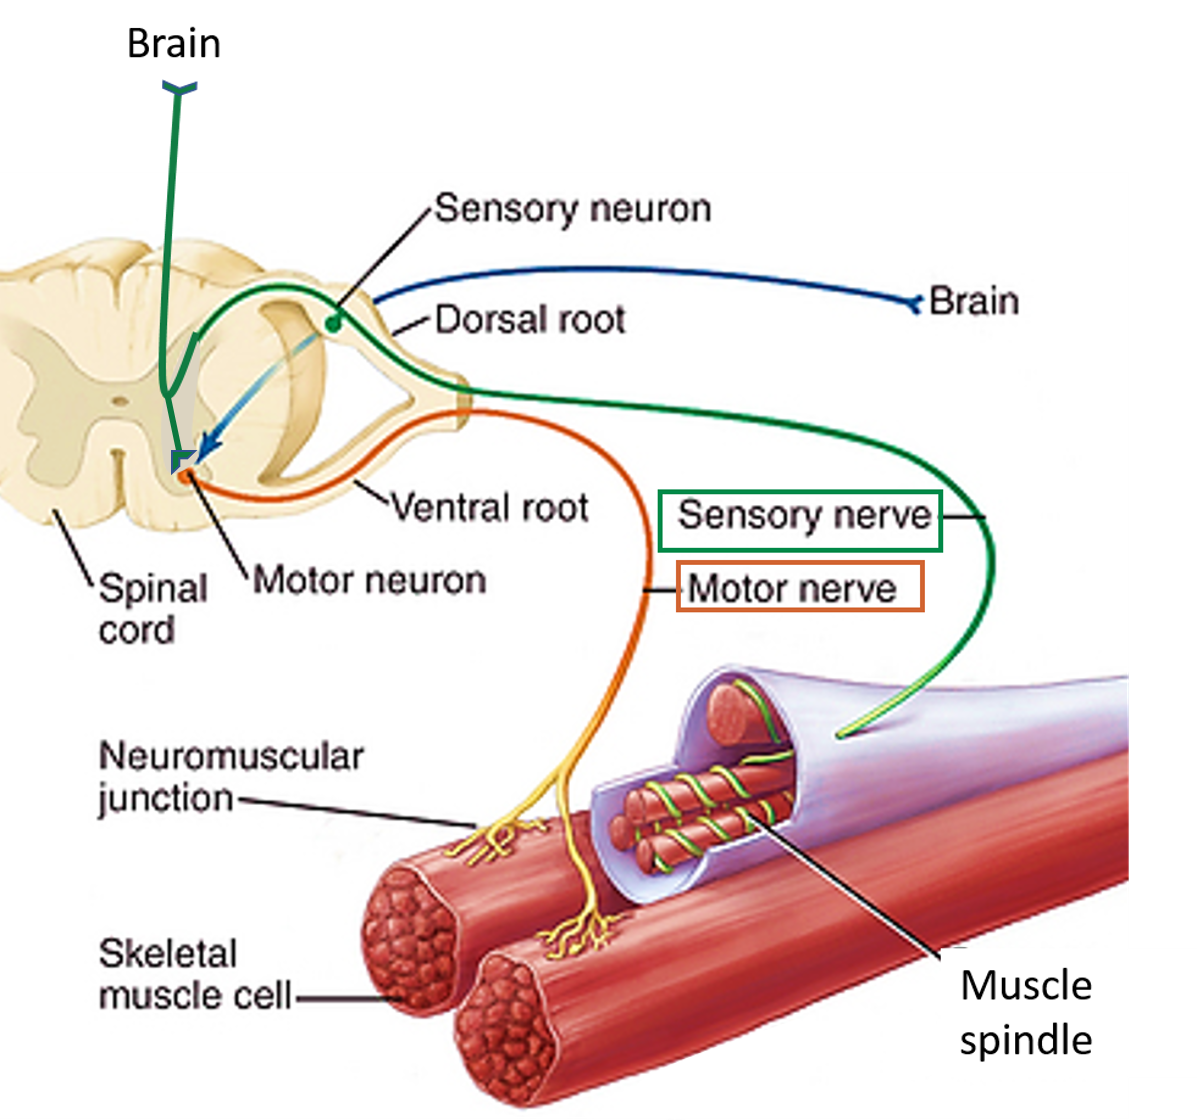 Skeletal Muscle Nerve Supply